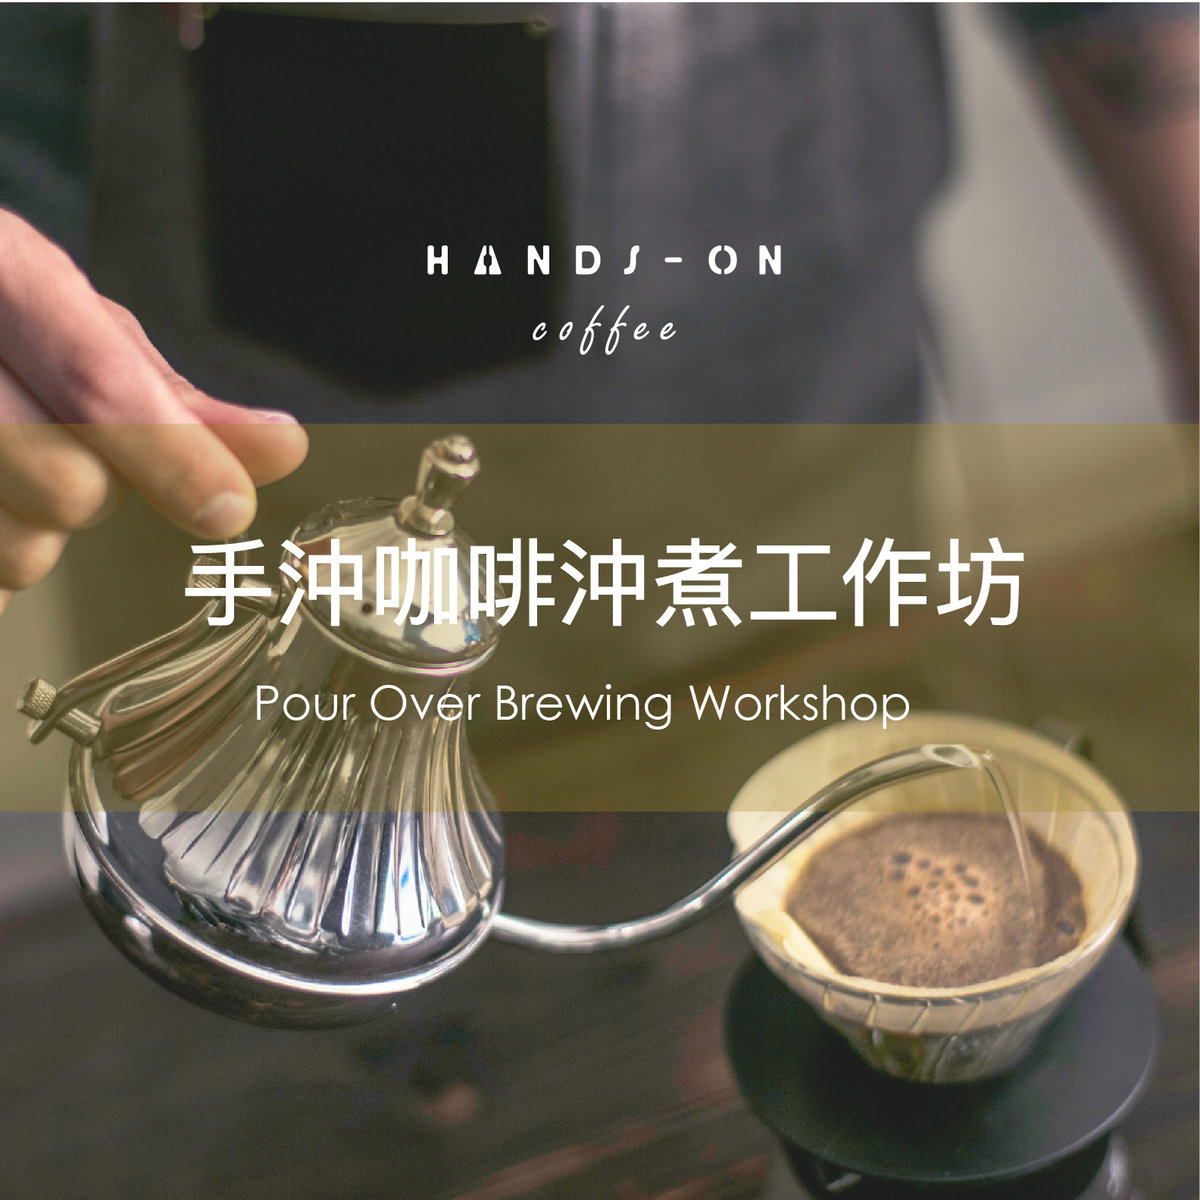 (15/6) [Special Discount for Two] Pour Over Brewing Workshop